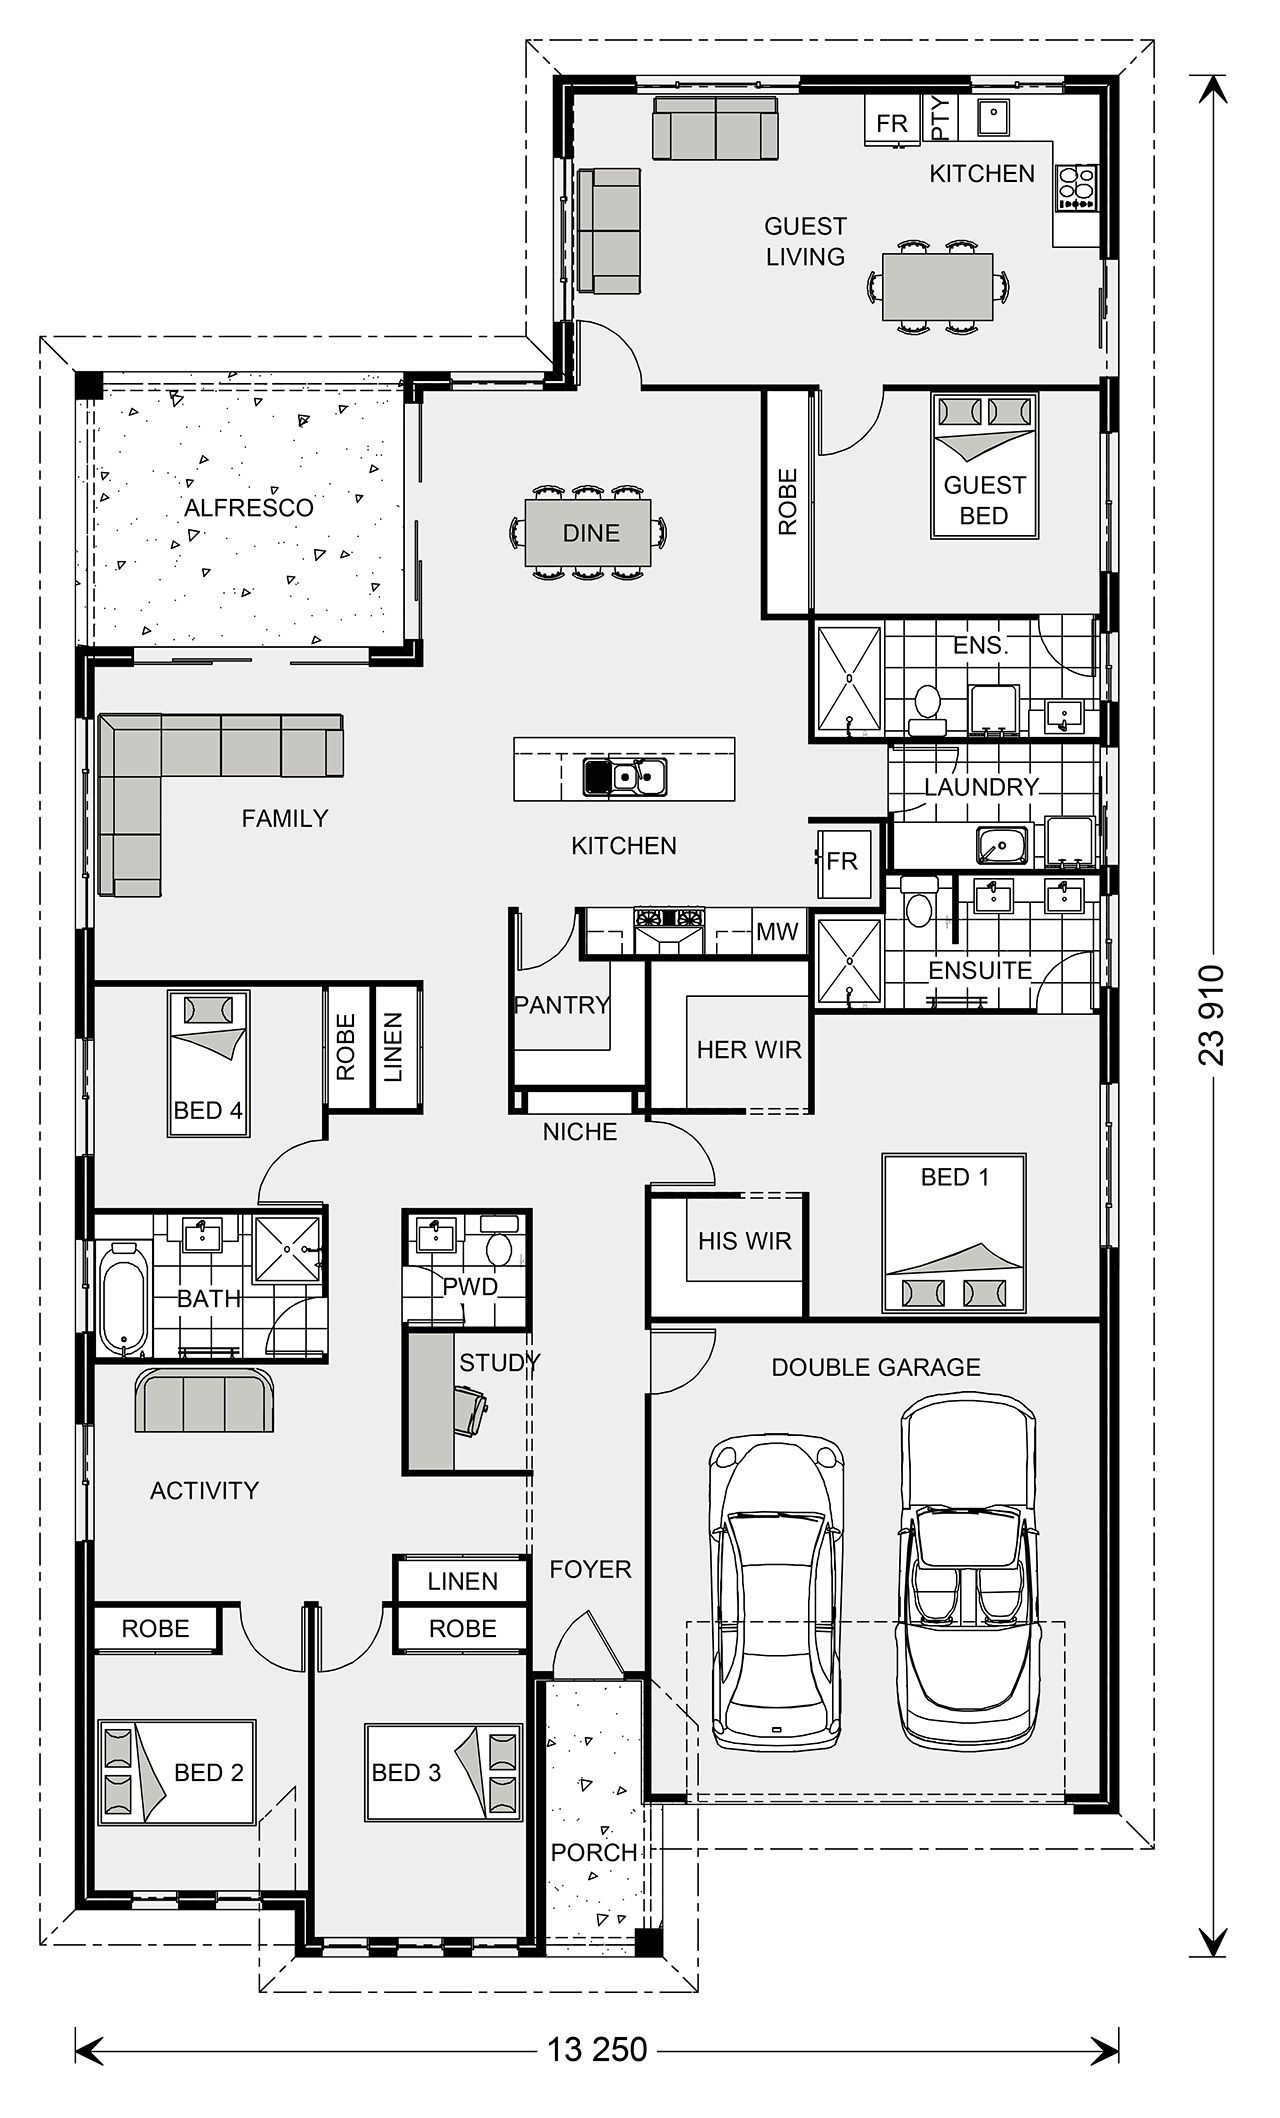 Flat Plan Gj Gardner Single Story House With Attached Granny Flat Floor